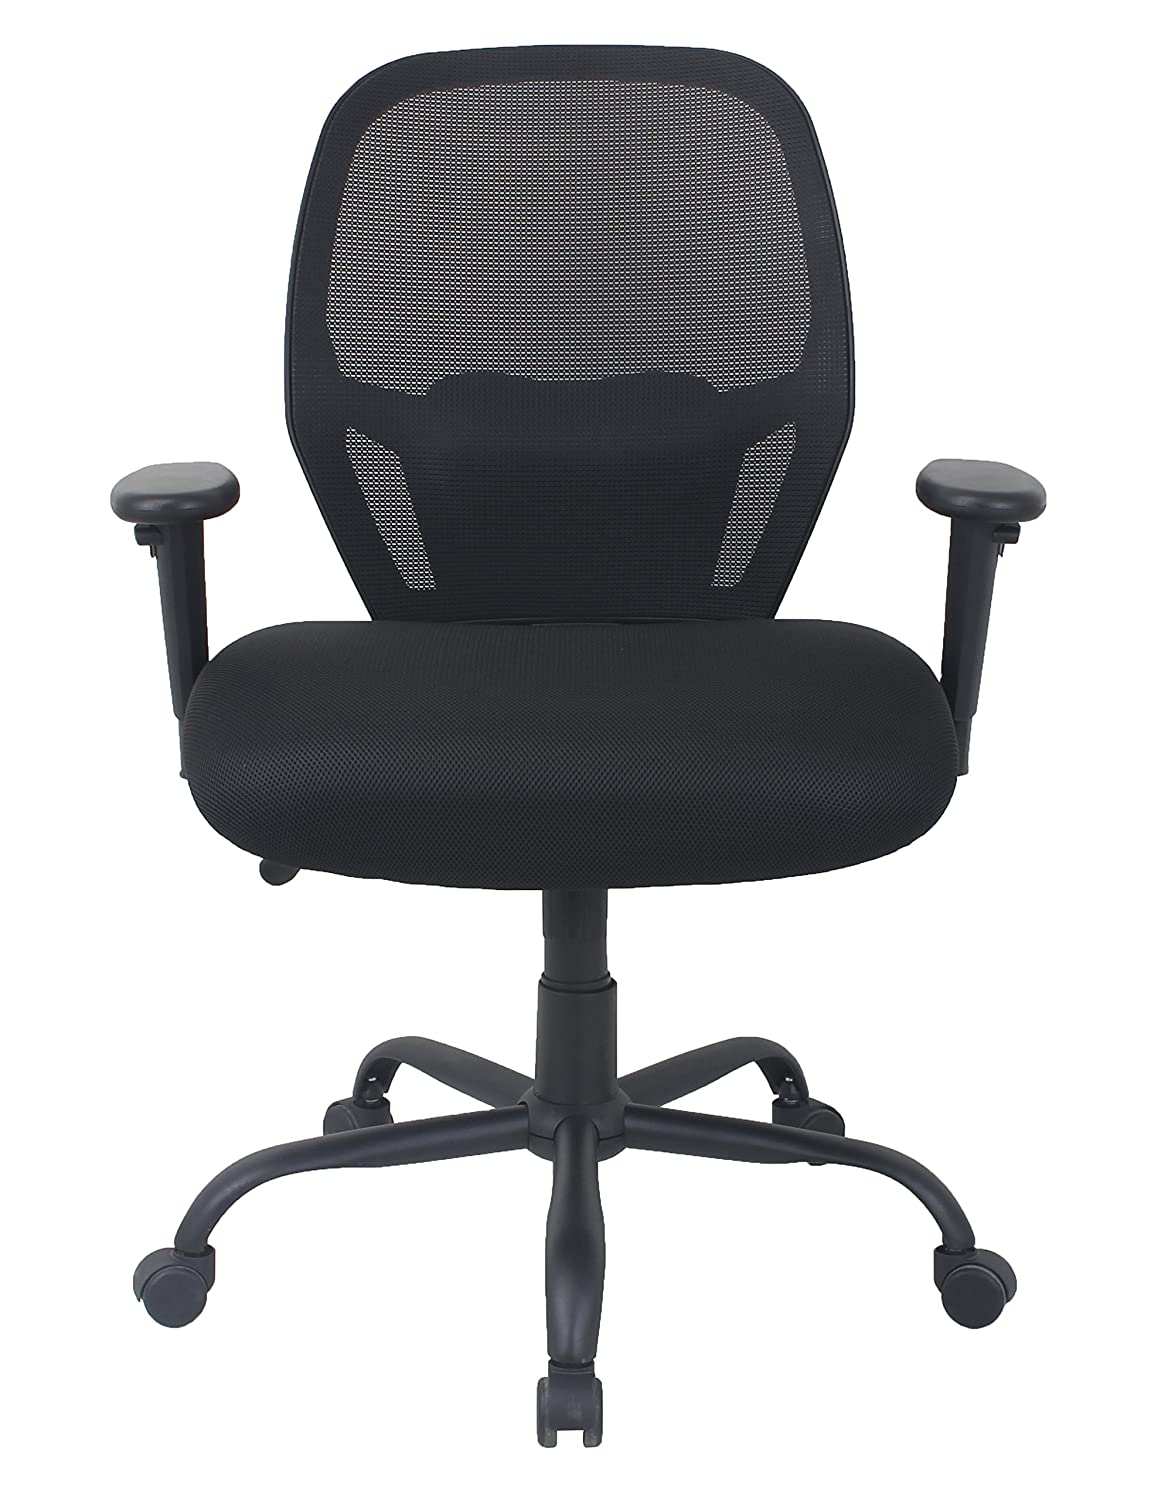 AmazonBasics Big & Tall Swivel Chair - Mesh with Lumbar Support, 450-Pound Capacity - Black